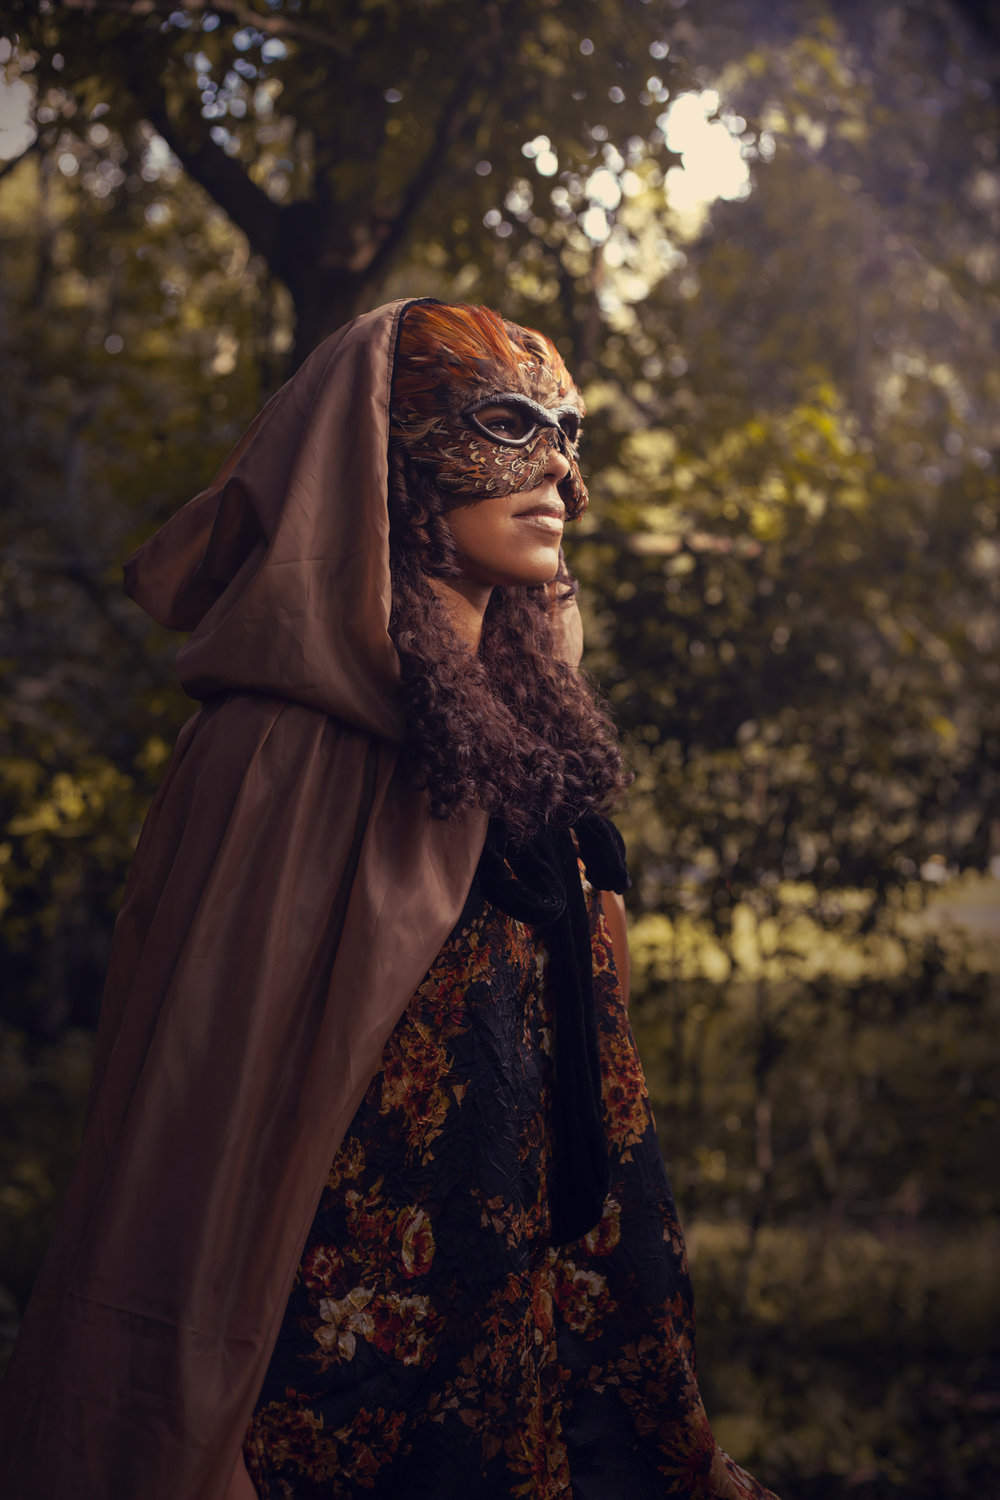 feathers-of-autumn-colors-chamber-photography-concept-character.jpg